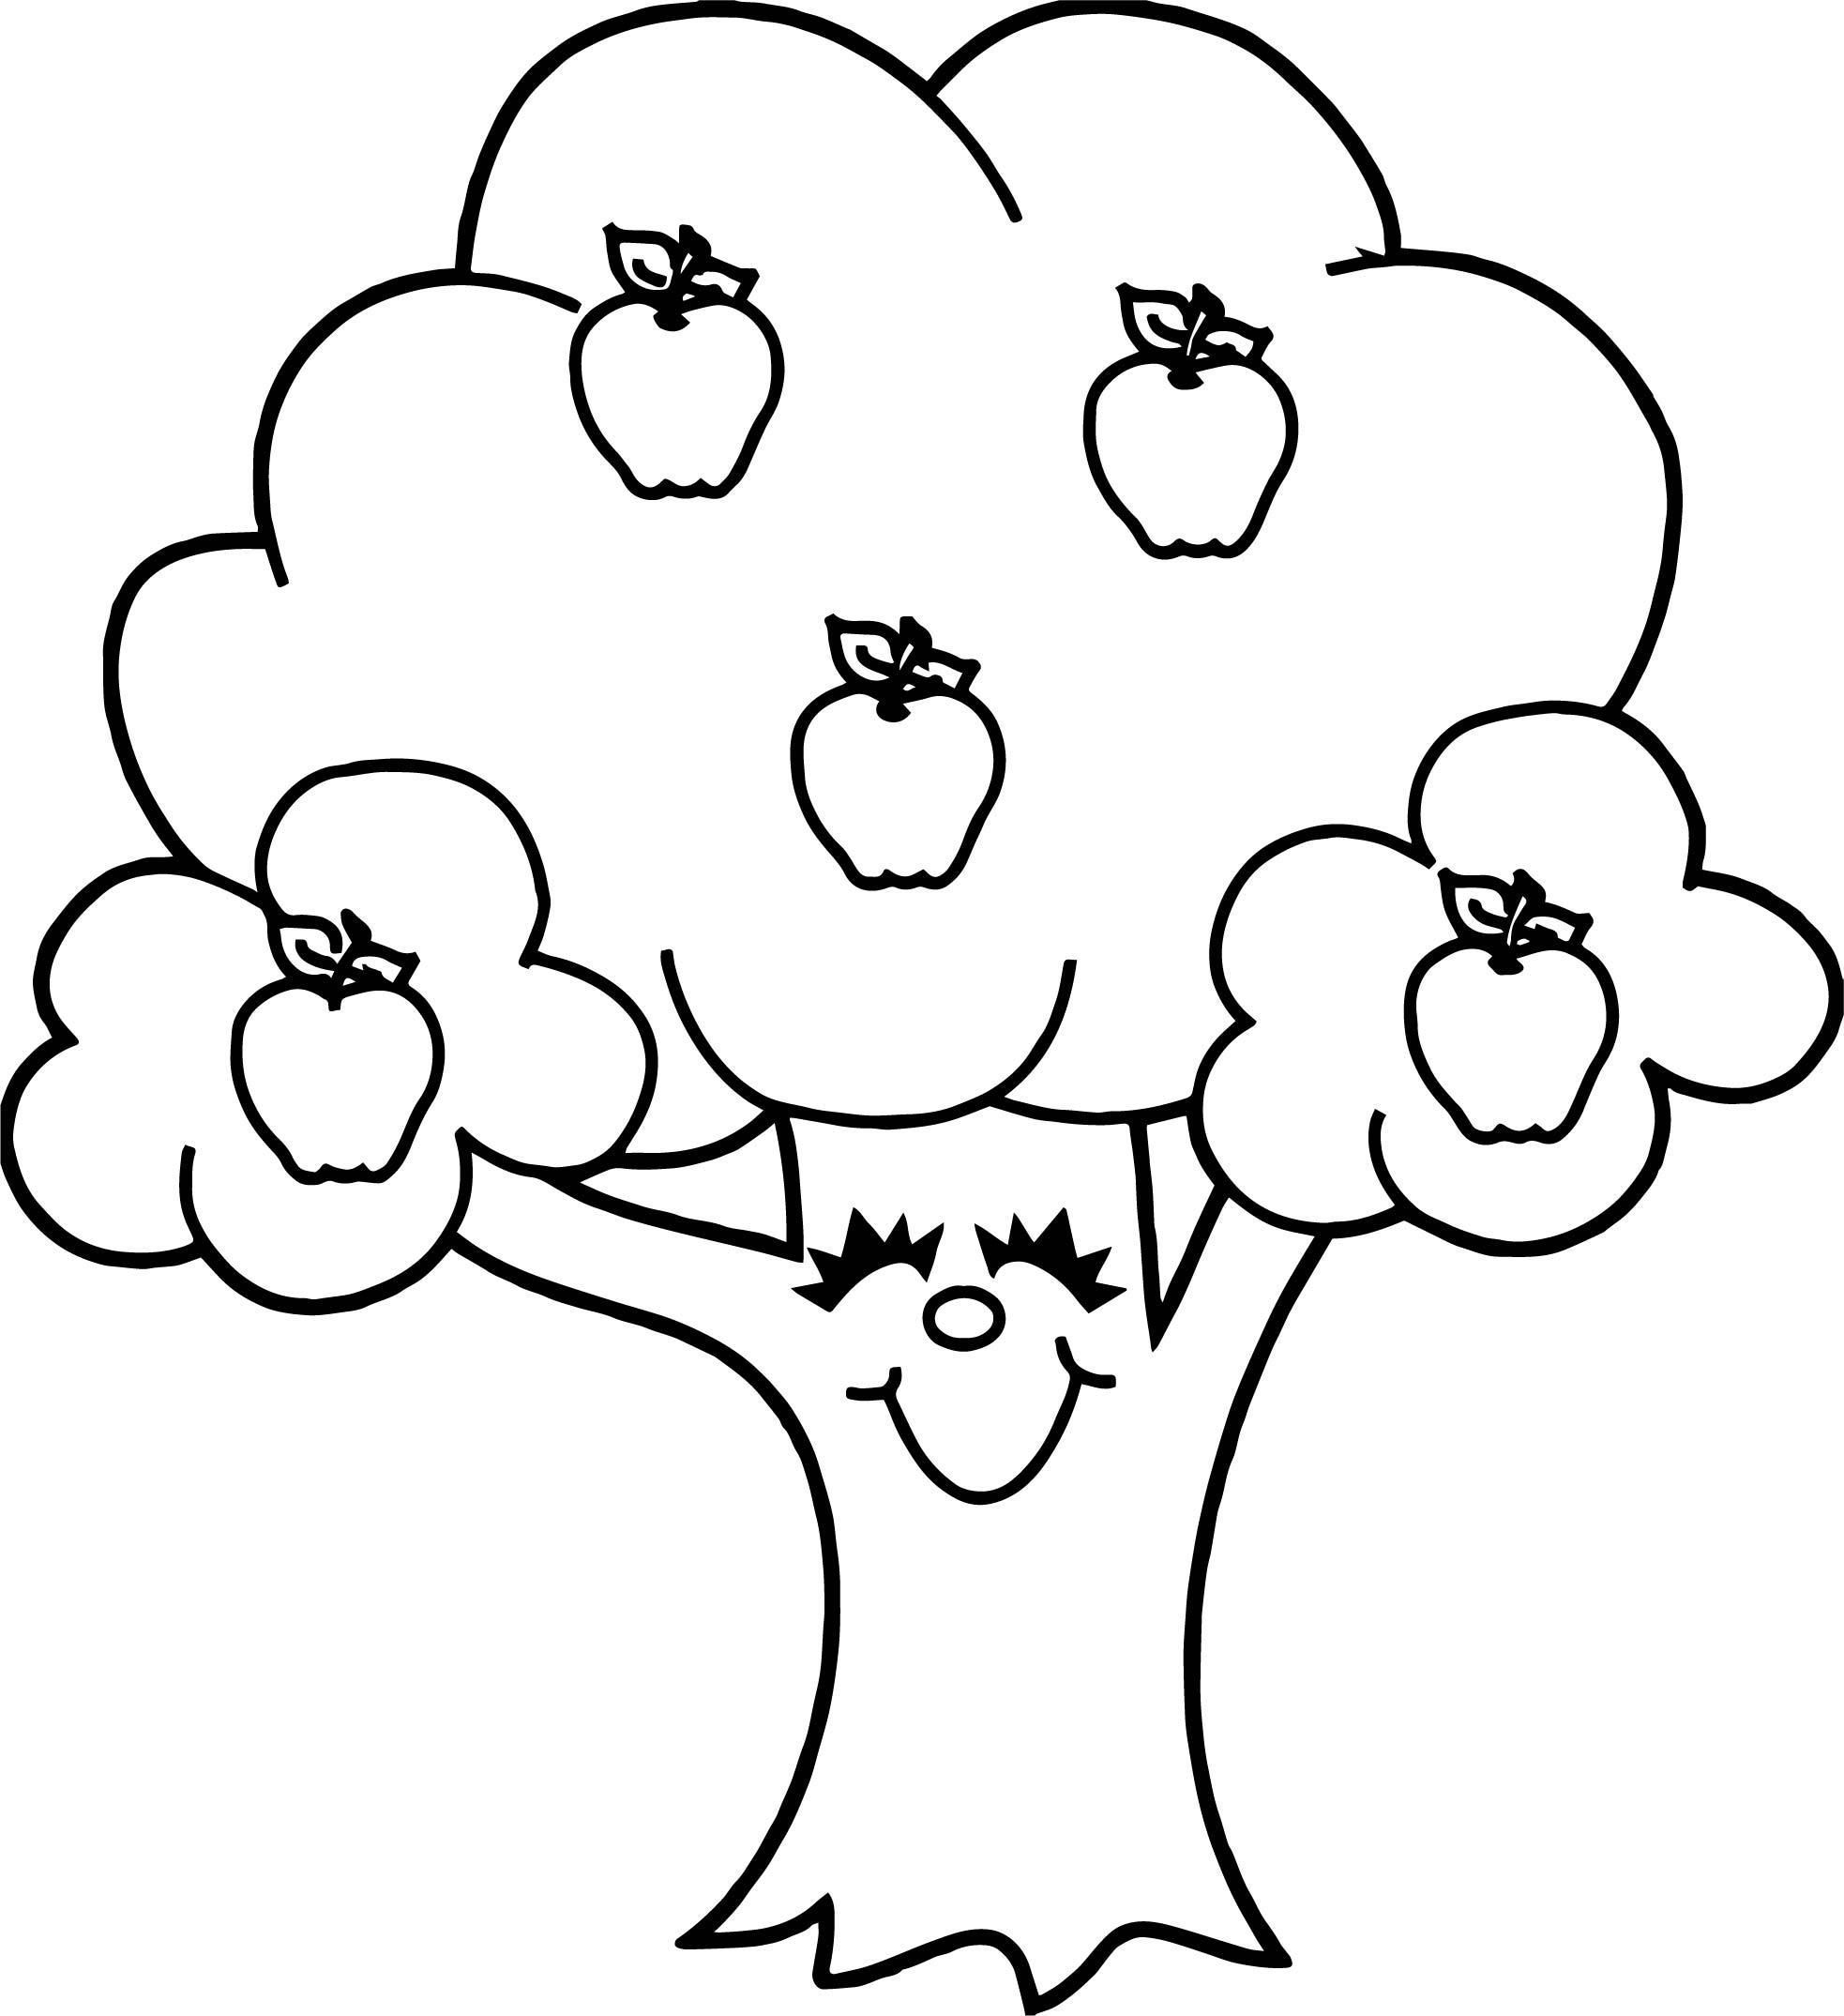 apple color pages apple logo coloring pages at getcoloringscom free pages apple color